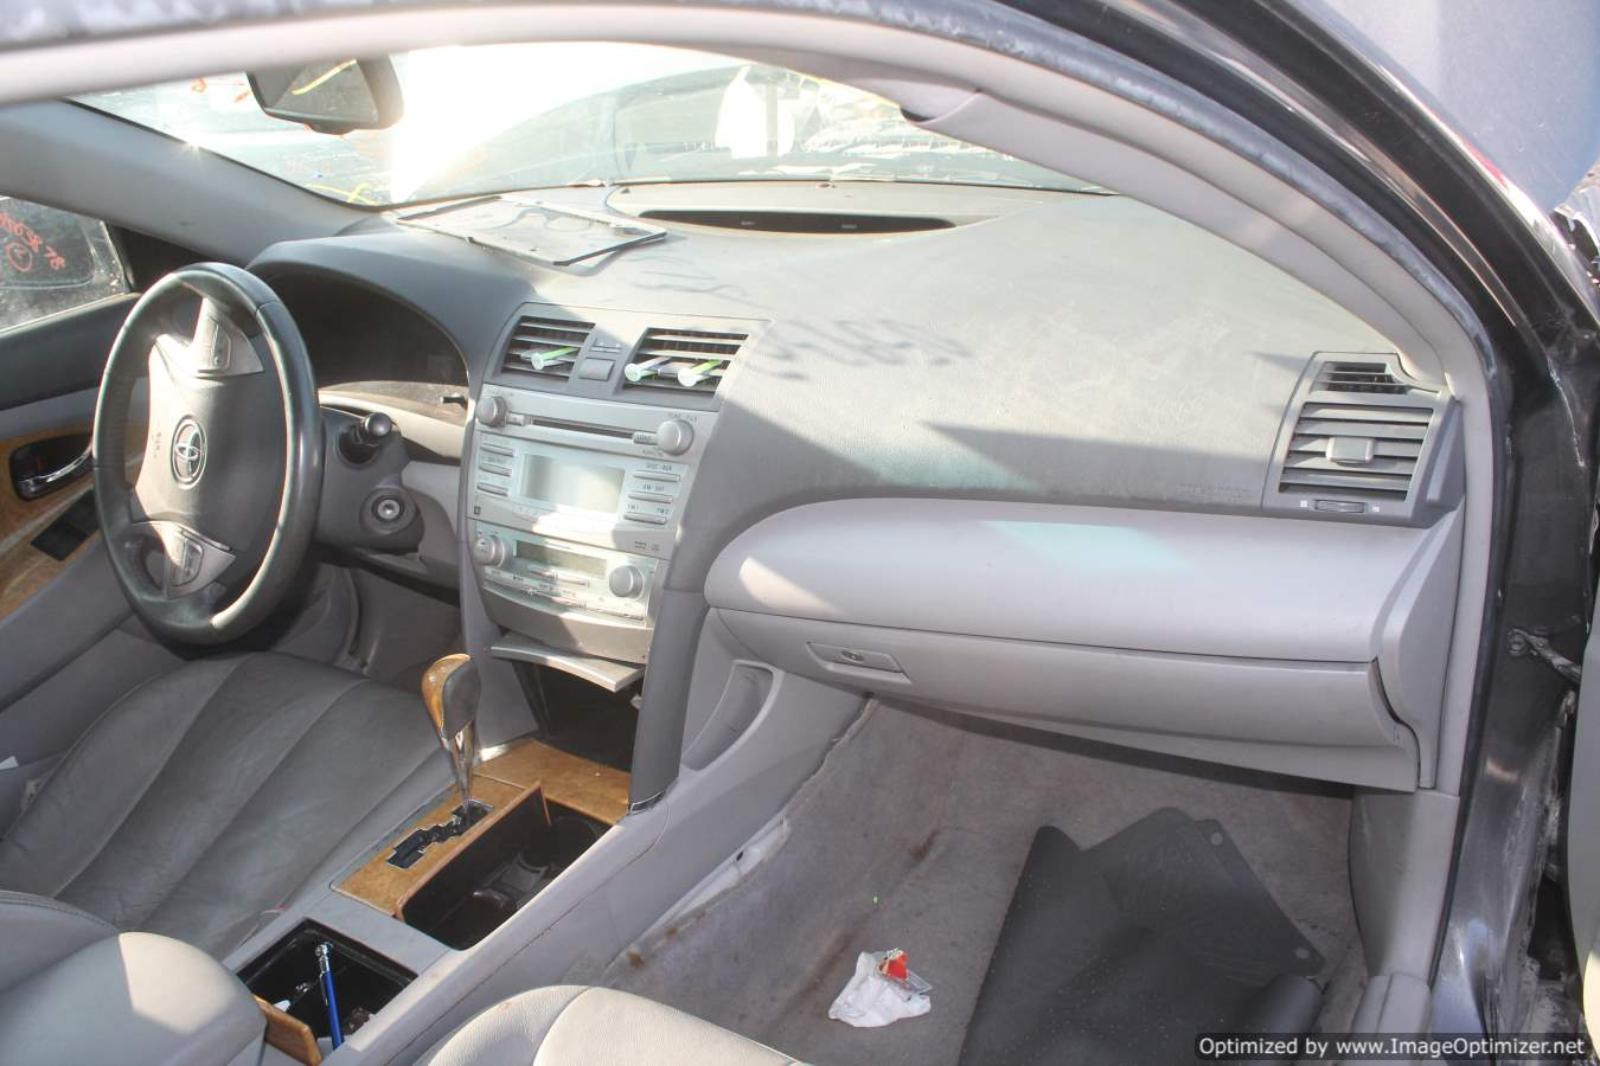 Details about 07 2007 TOYOTA CAMRY XLE: FM Stereo AM Radio Receiver CD  Player, 51822, Tested